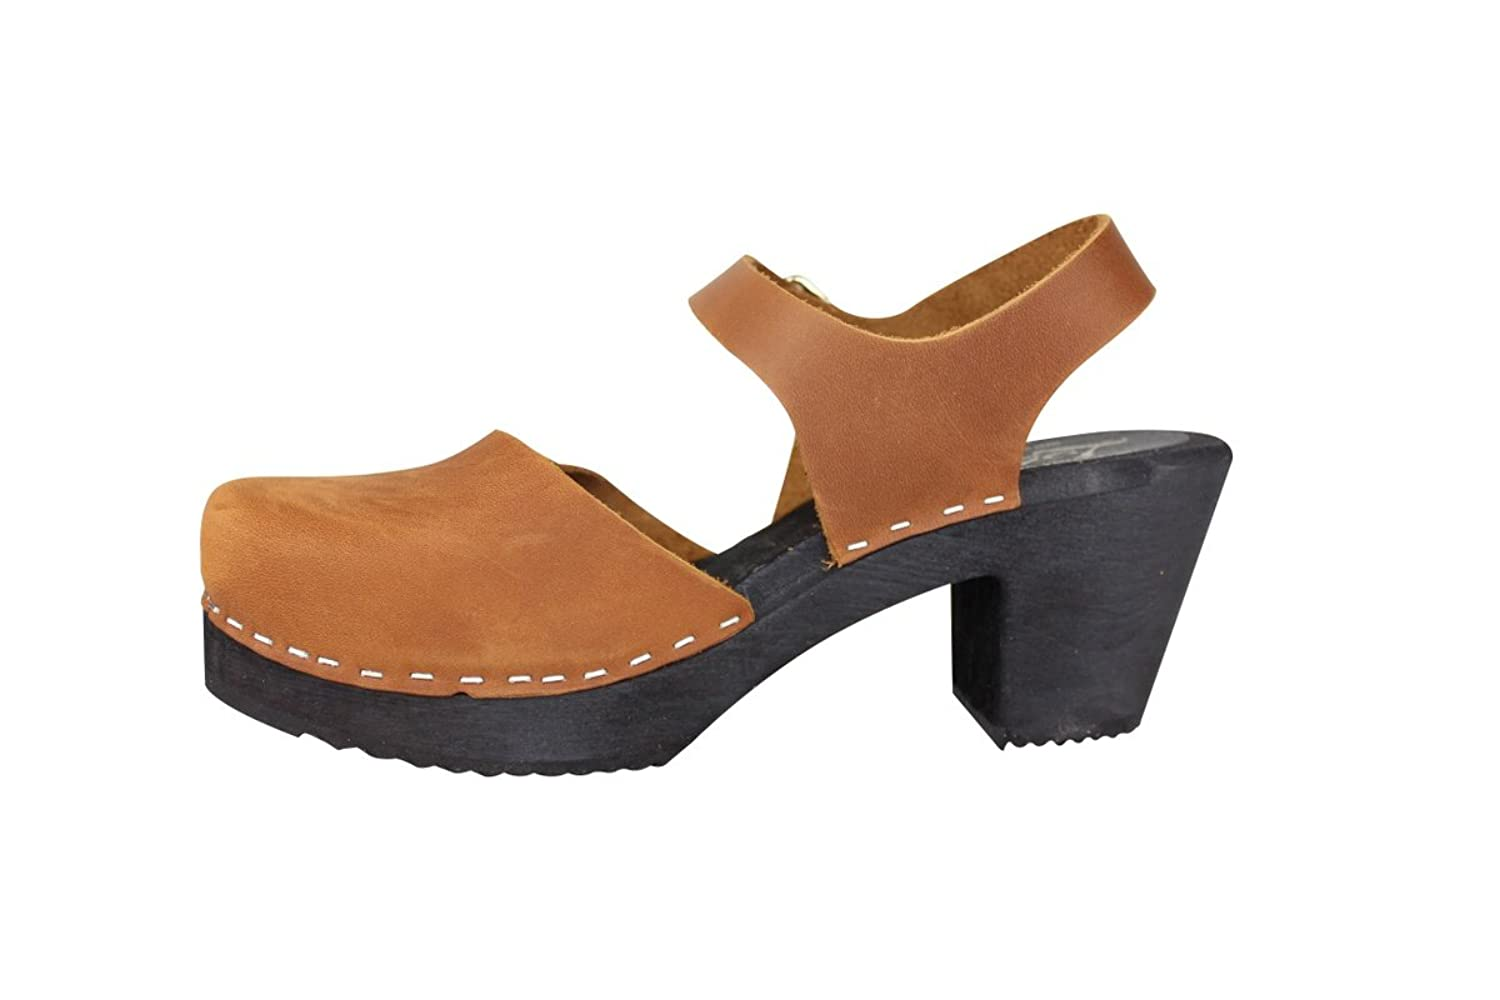 Lotta From Stockholm Highwood Clogs in Brown Oiled with Black Sole EUR 42:  Amazon.co.uk: Shoes & Bags